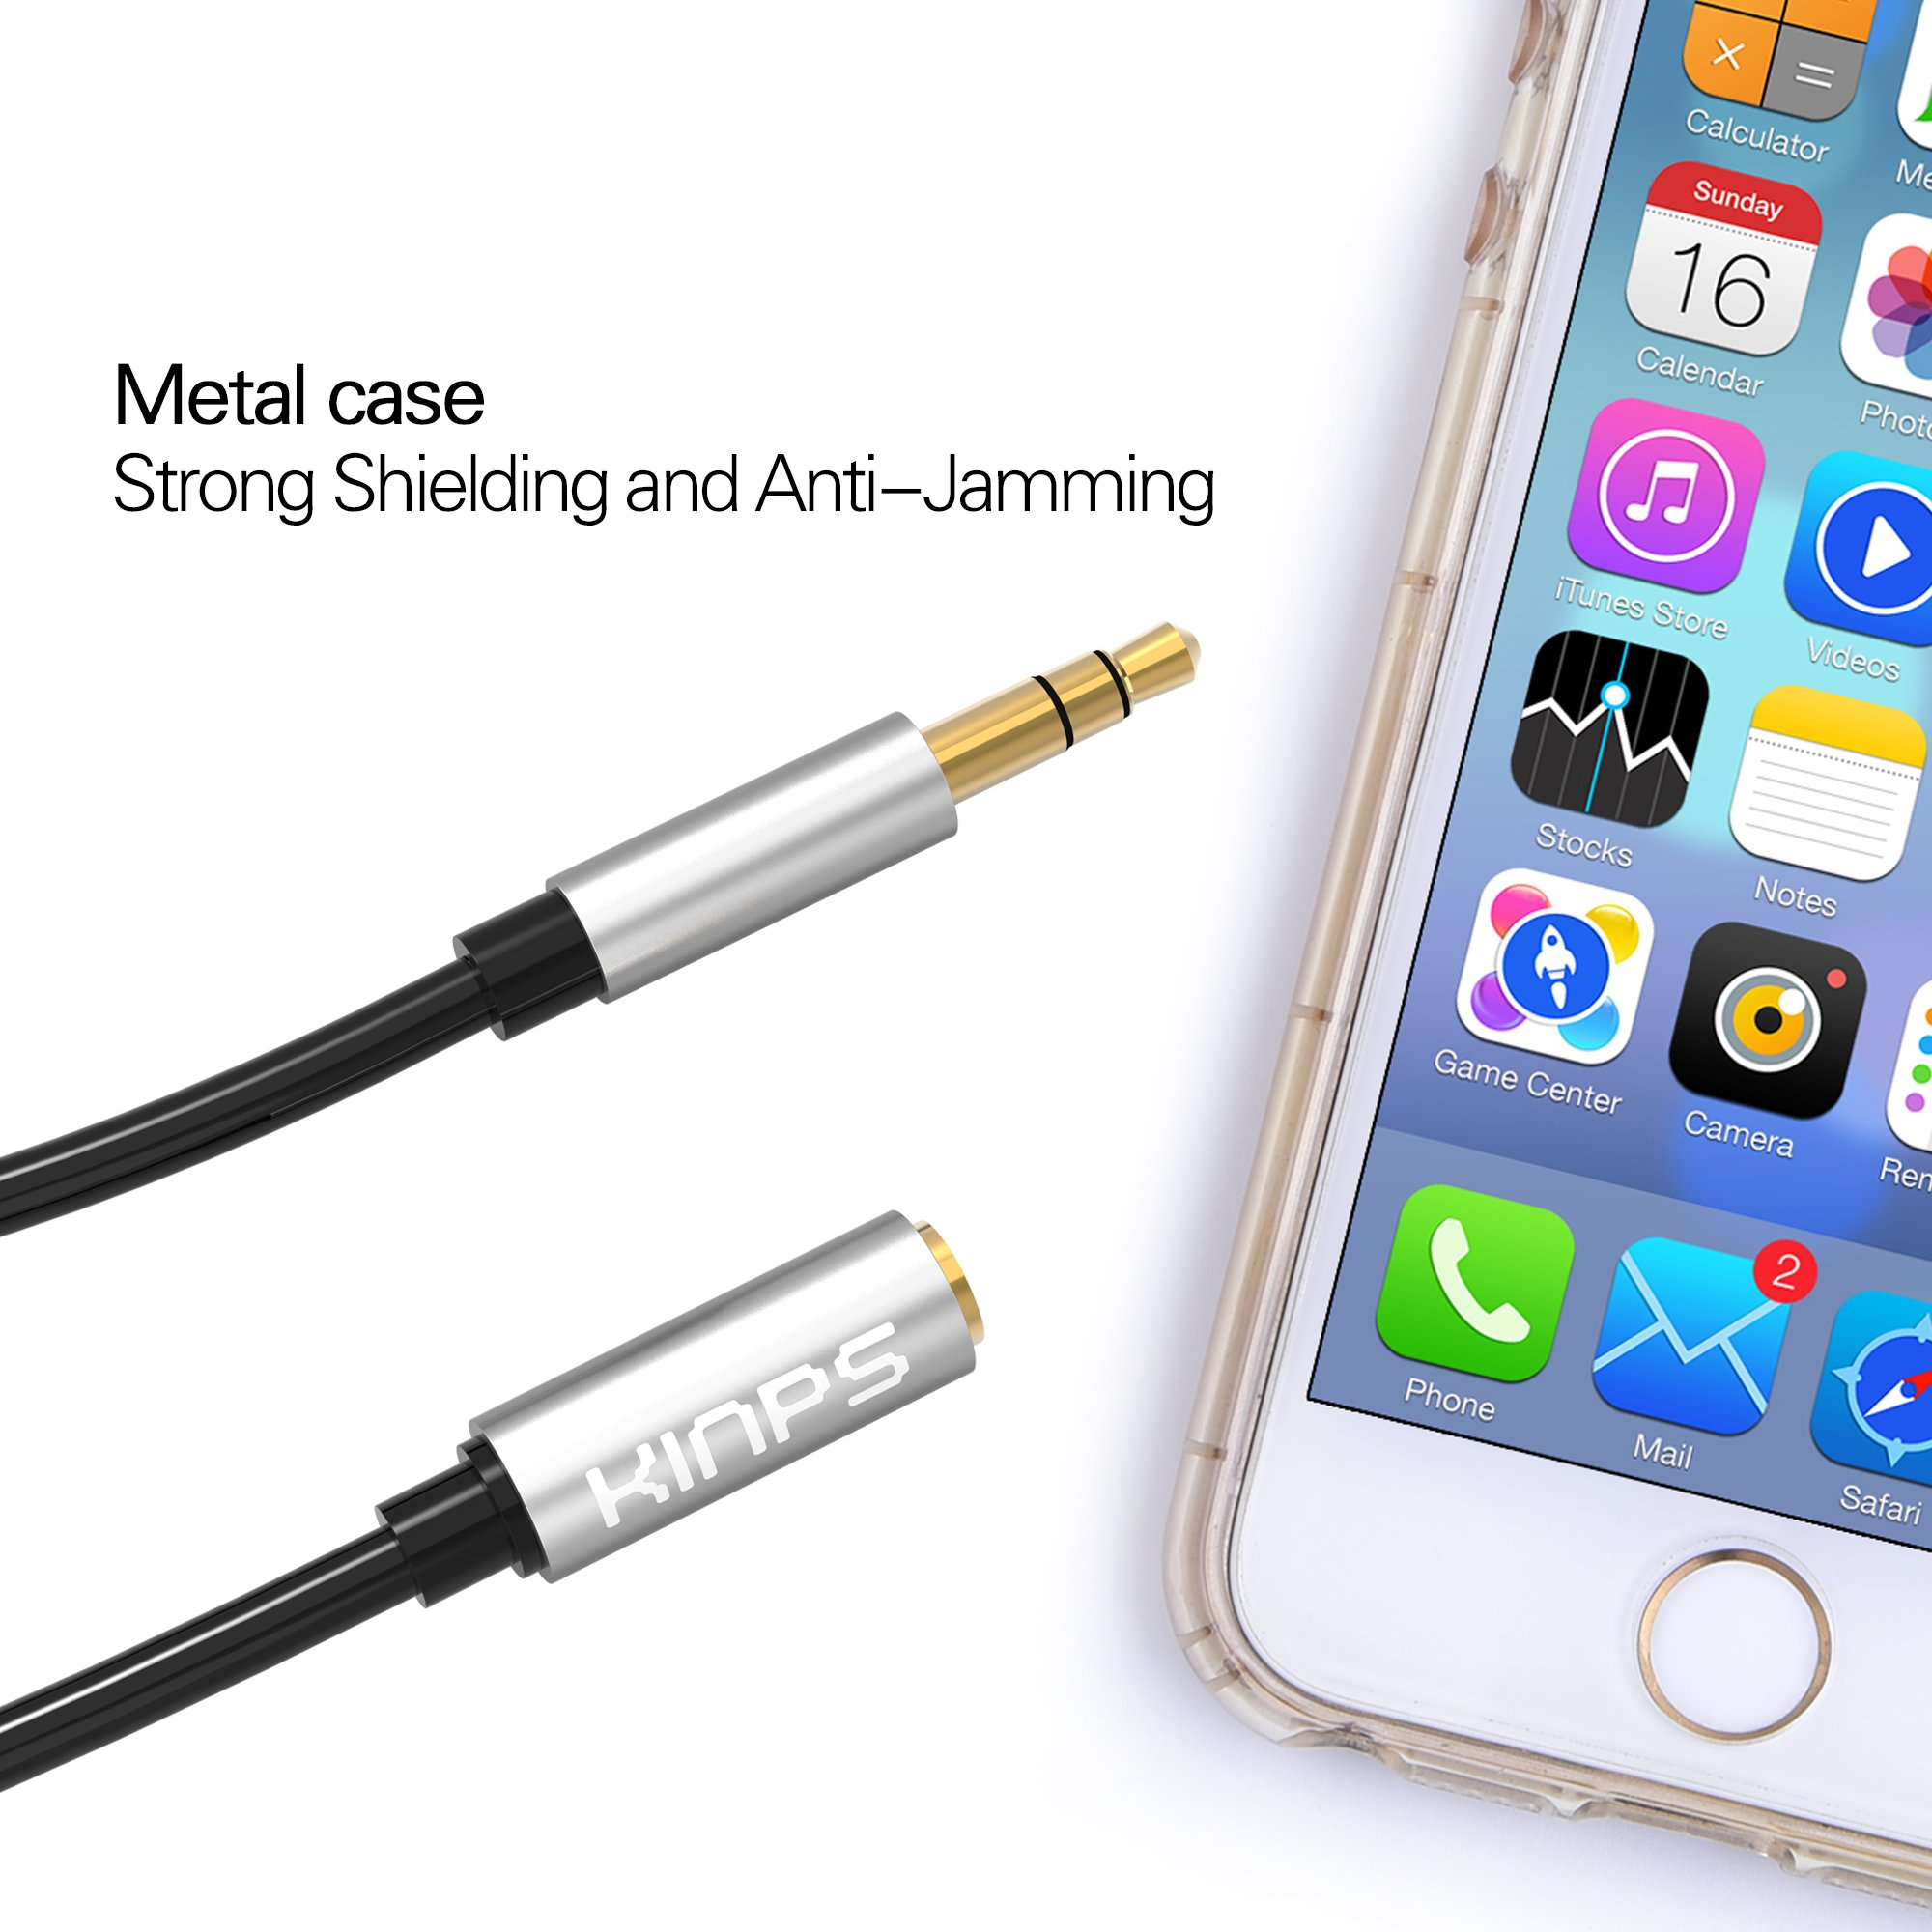 Kinps 5M Audio Auxiliary Stereo Extension Cable 3.5mm Male to Female, Stereo Jack Cord for Phones, Headphones, Speakers, Tablets, PCs, MP3 Players and More (16.6ft/5m, Black)